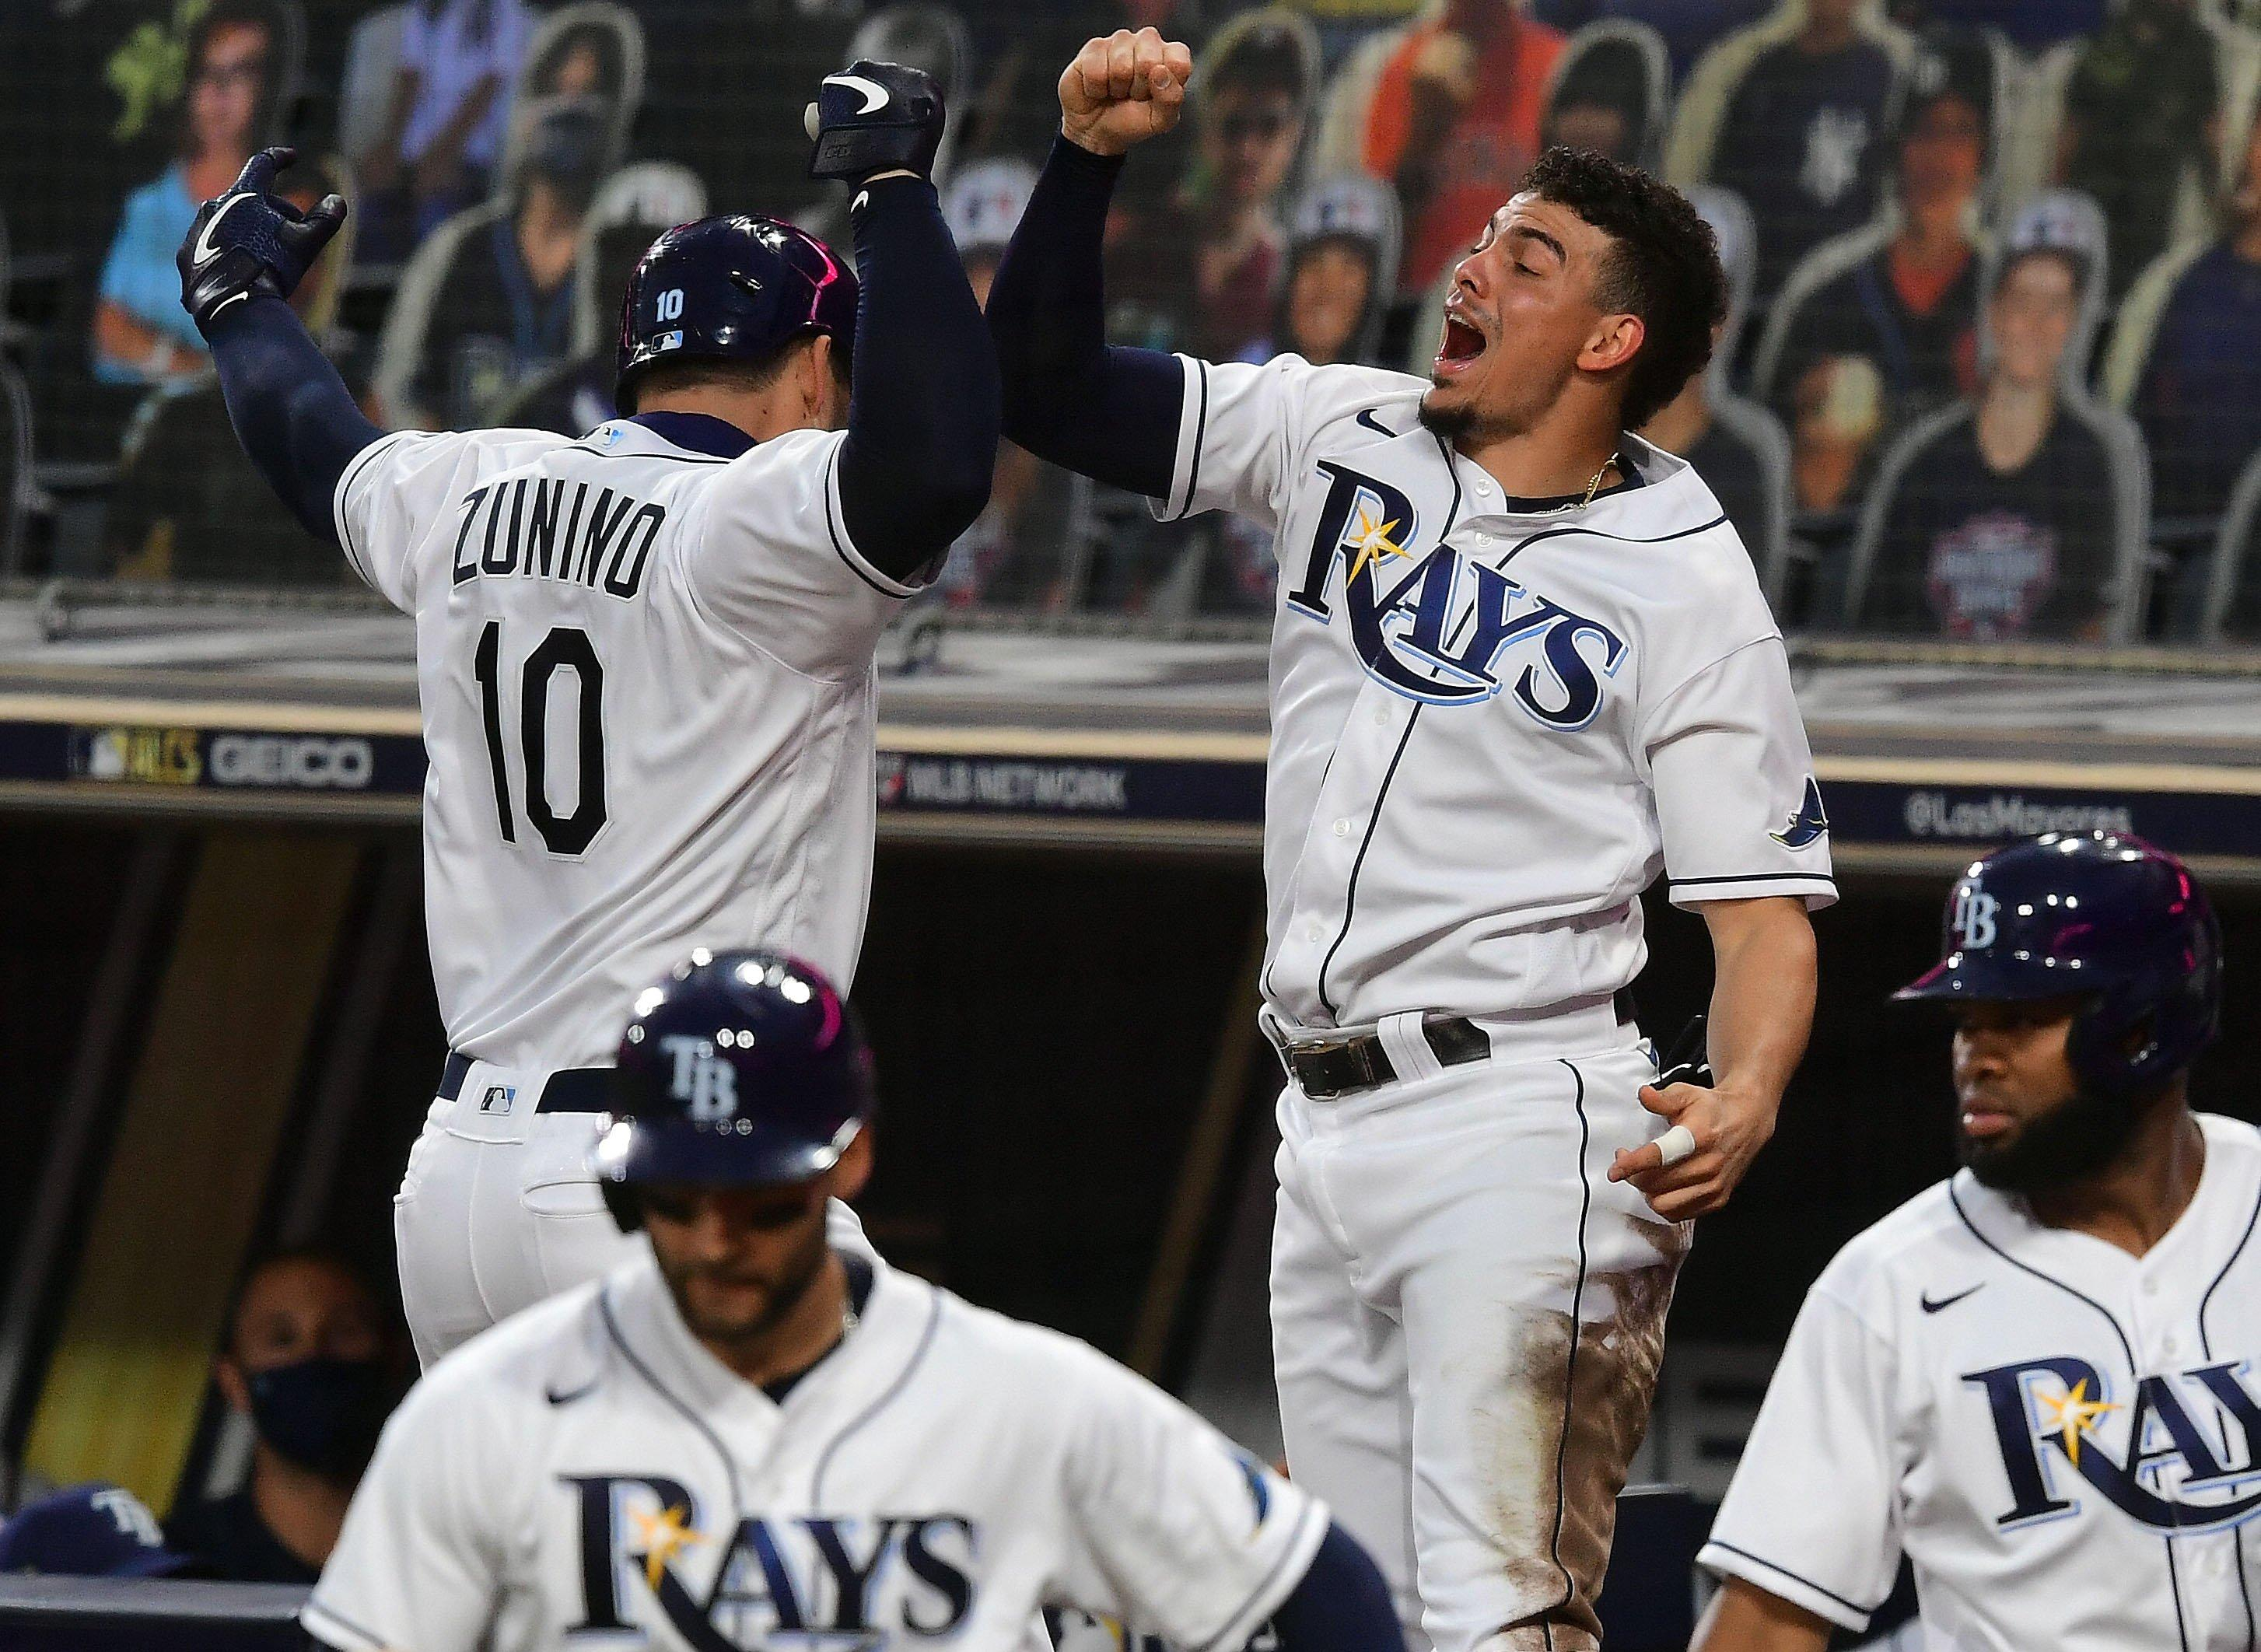 Tampa Bay Rays win American League pennant; will face Dodgers or Braves in World Series